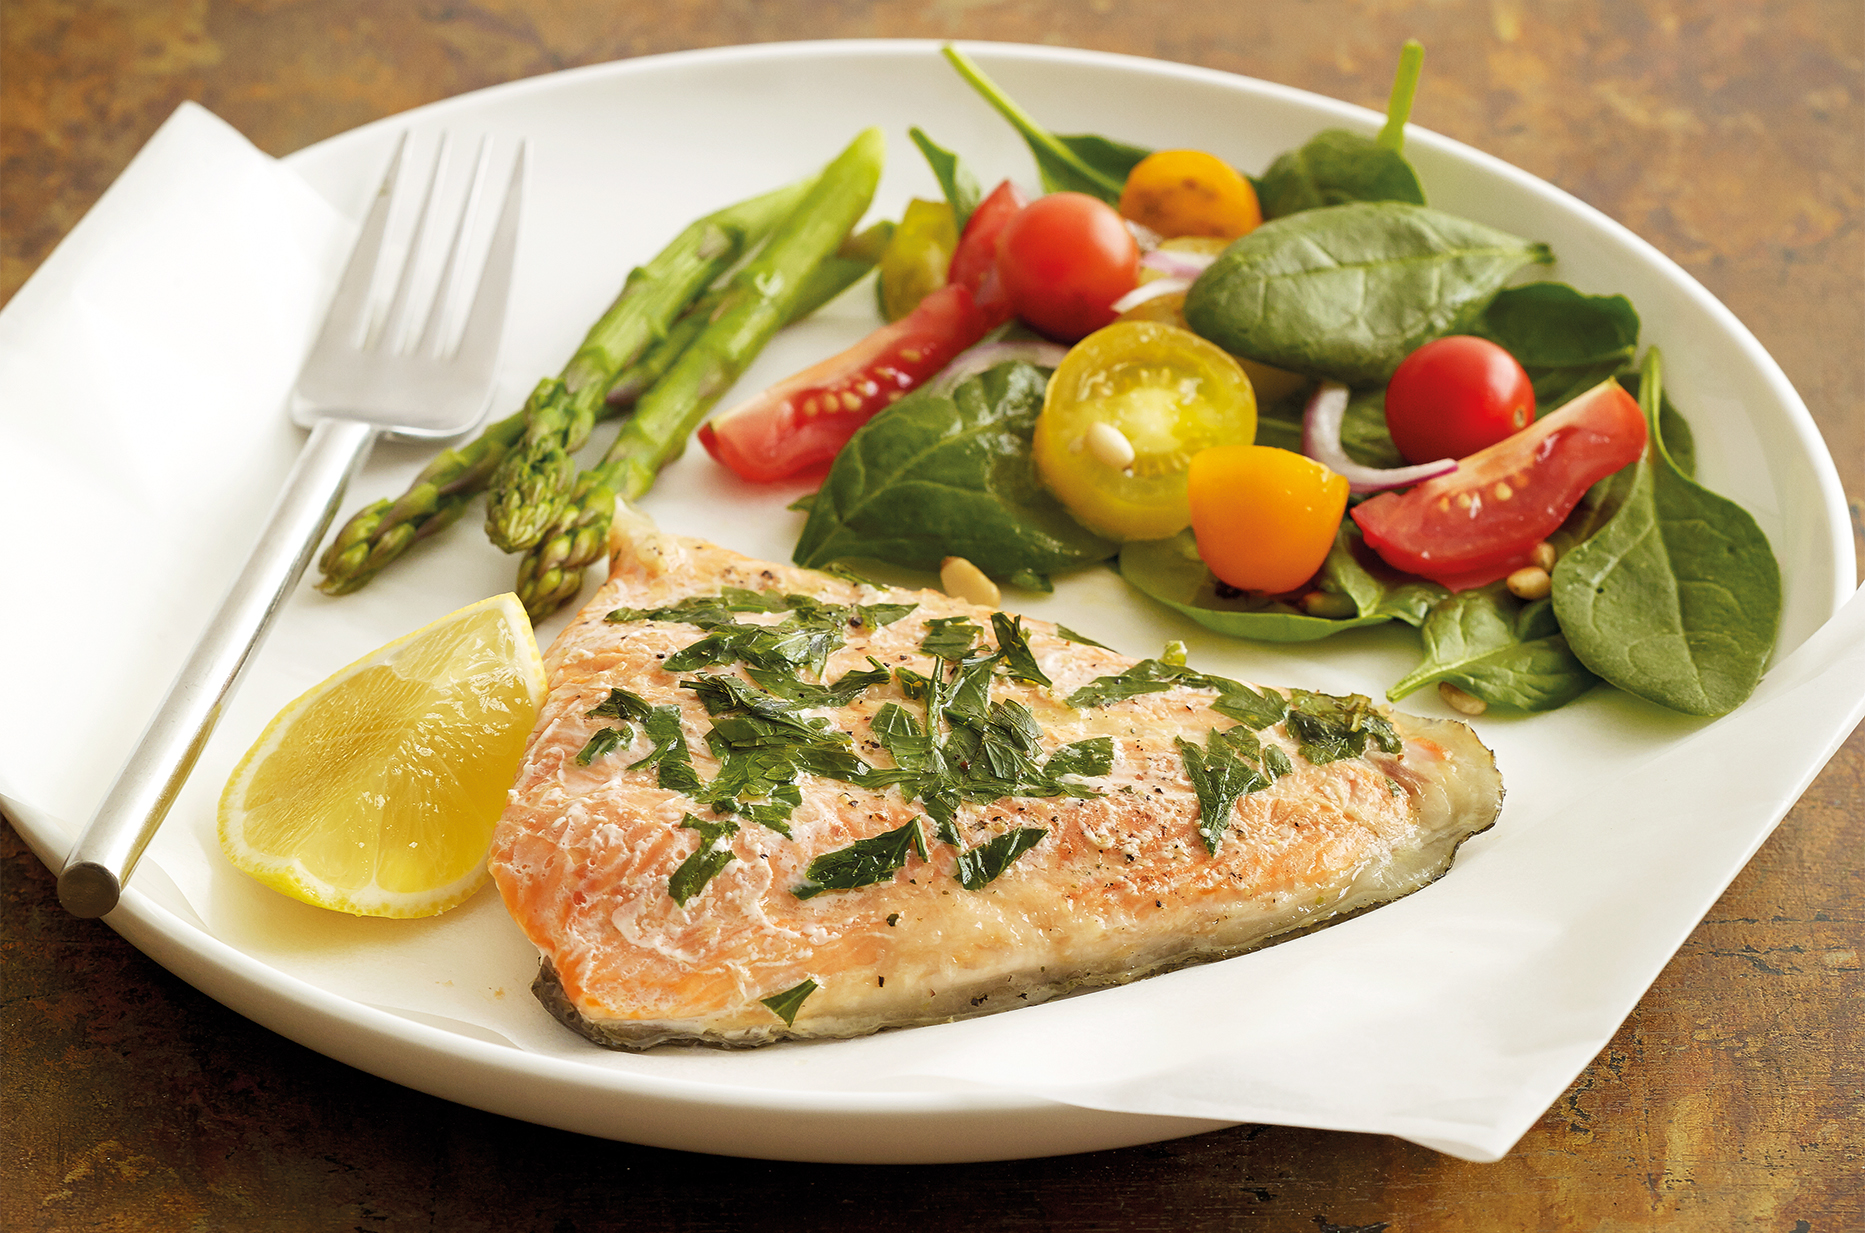 Large white dinner plate with baked salmon topped with herbs and lemon, salad and asparagus